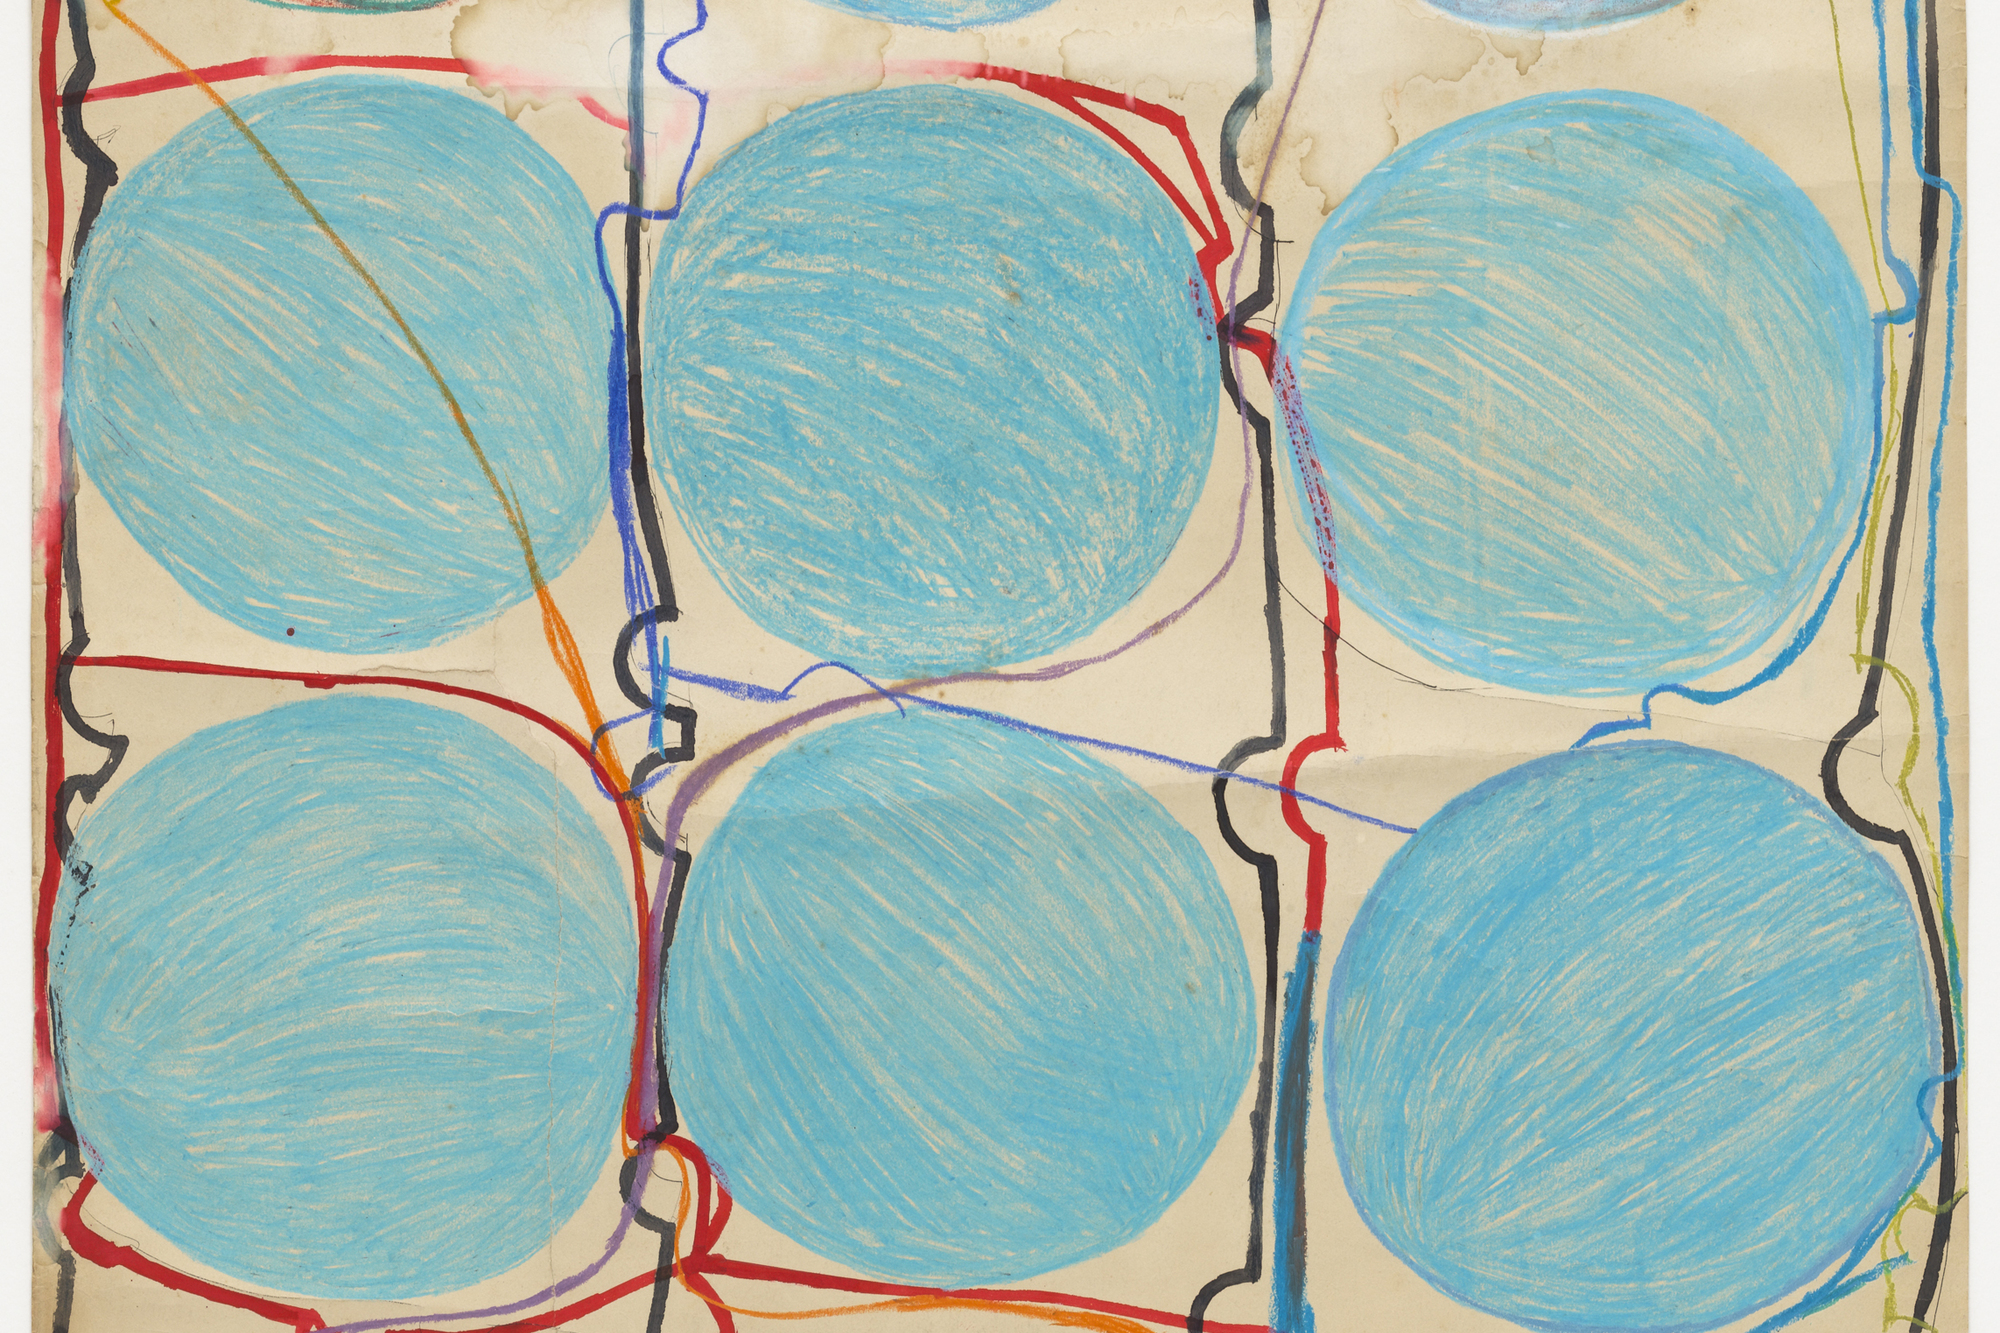 Atsuko Tanaka. Untitled. 1956. Watercolor and felt-tip pen on paper, 42 7/8 × 30 3/8″ (108.9 × 77.2 cm). The Museum of Modern Art, New York. Purchased with funds provided by the Edward John Noble Foundation, Frances Keech Fund, and Committee on Drawings Funds. © 2010 Ryoji Ito